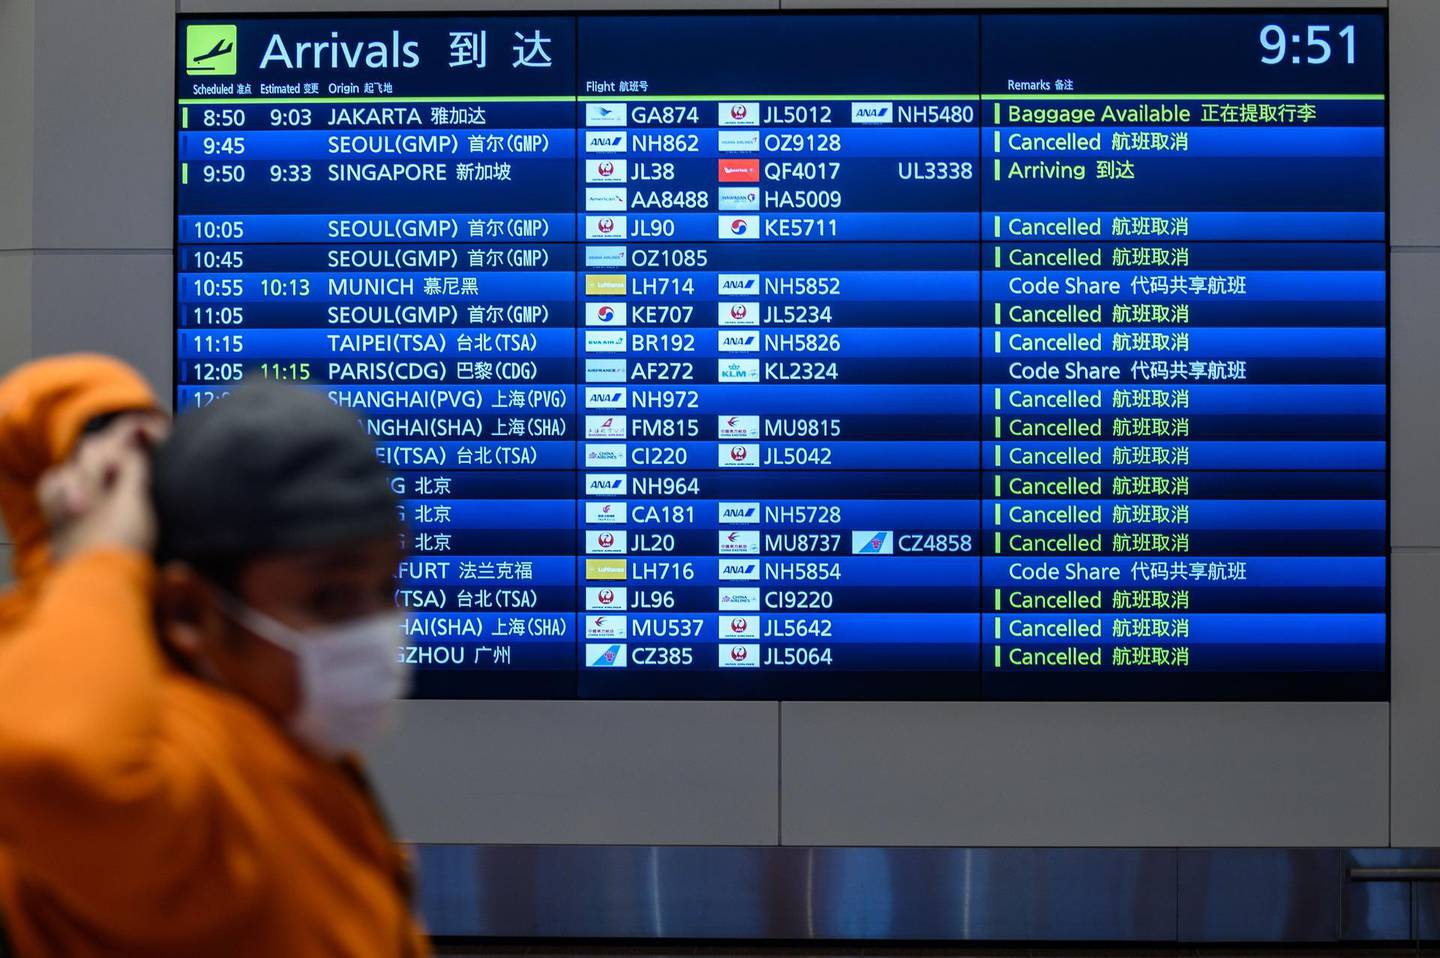 An arrival board showing cancelled flights is seen past a mask-clad man at Tokyo's Haneda Airport on March 10, 2020. The death toll from the COVID-19 illness caused by the novel coronavirus neared 4,000, with more than 110,000 cases recorded in over 100 countries since the epidemic erupted in December in Wuhan, China. It has disrupted global travel, and cancelled conferences and sporting events.  / AFP / Philip FONG